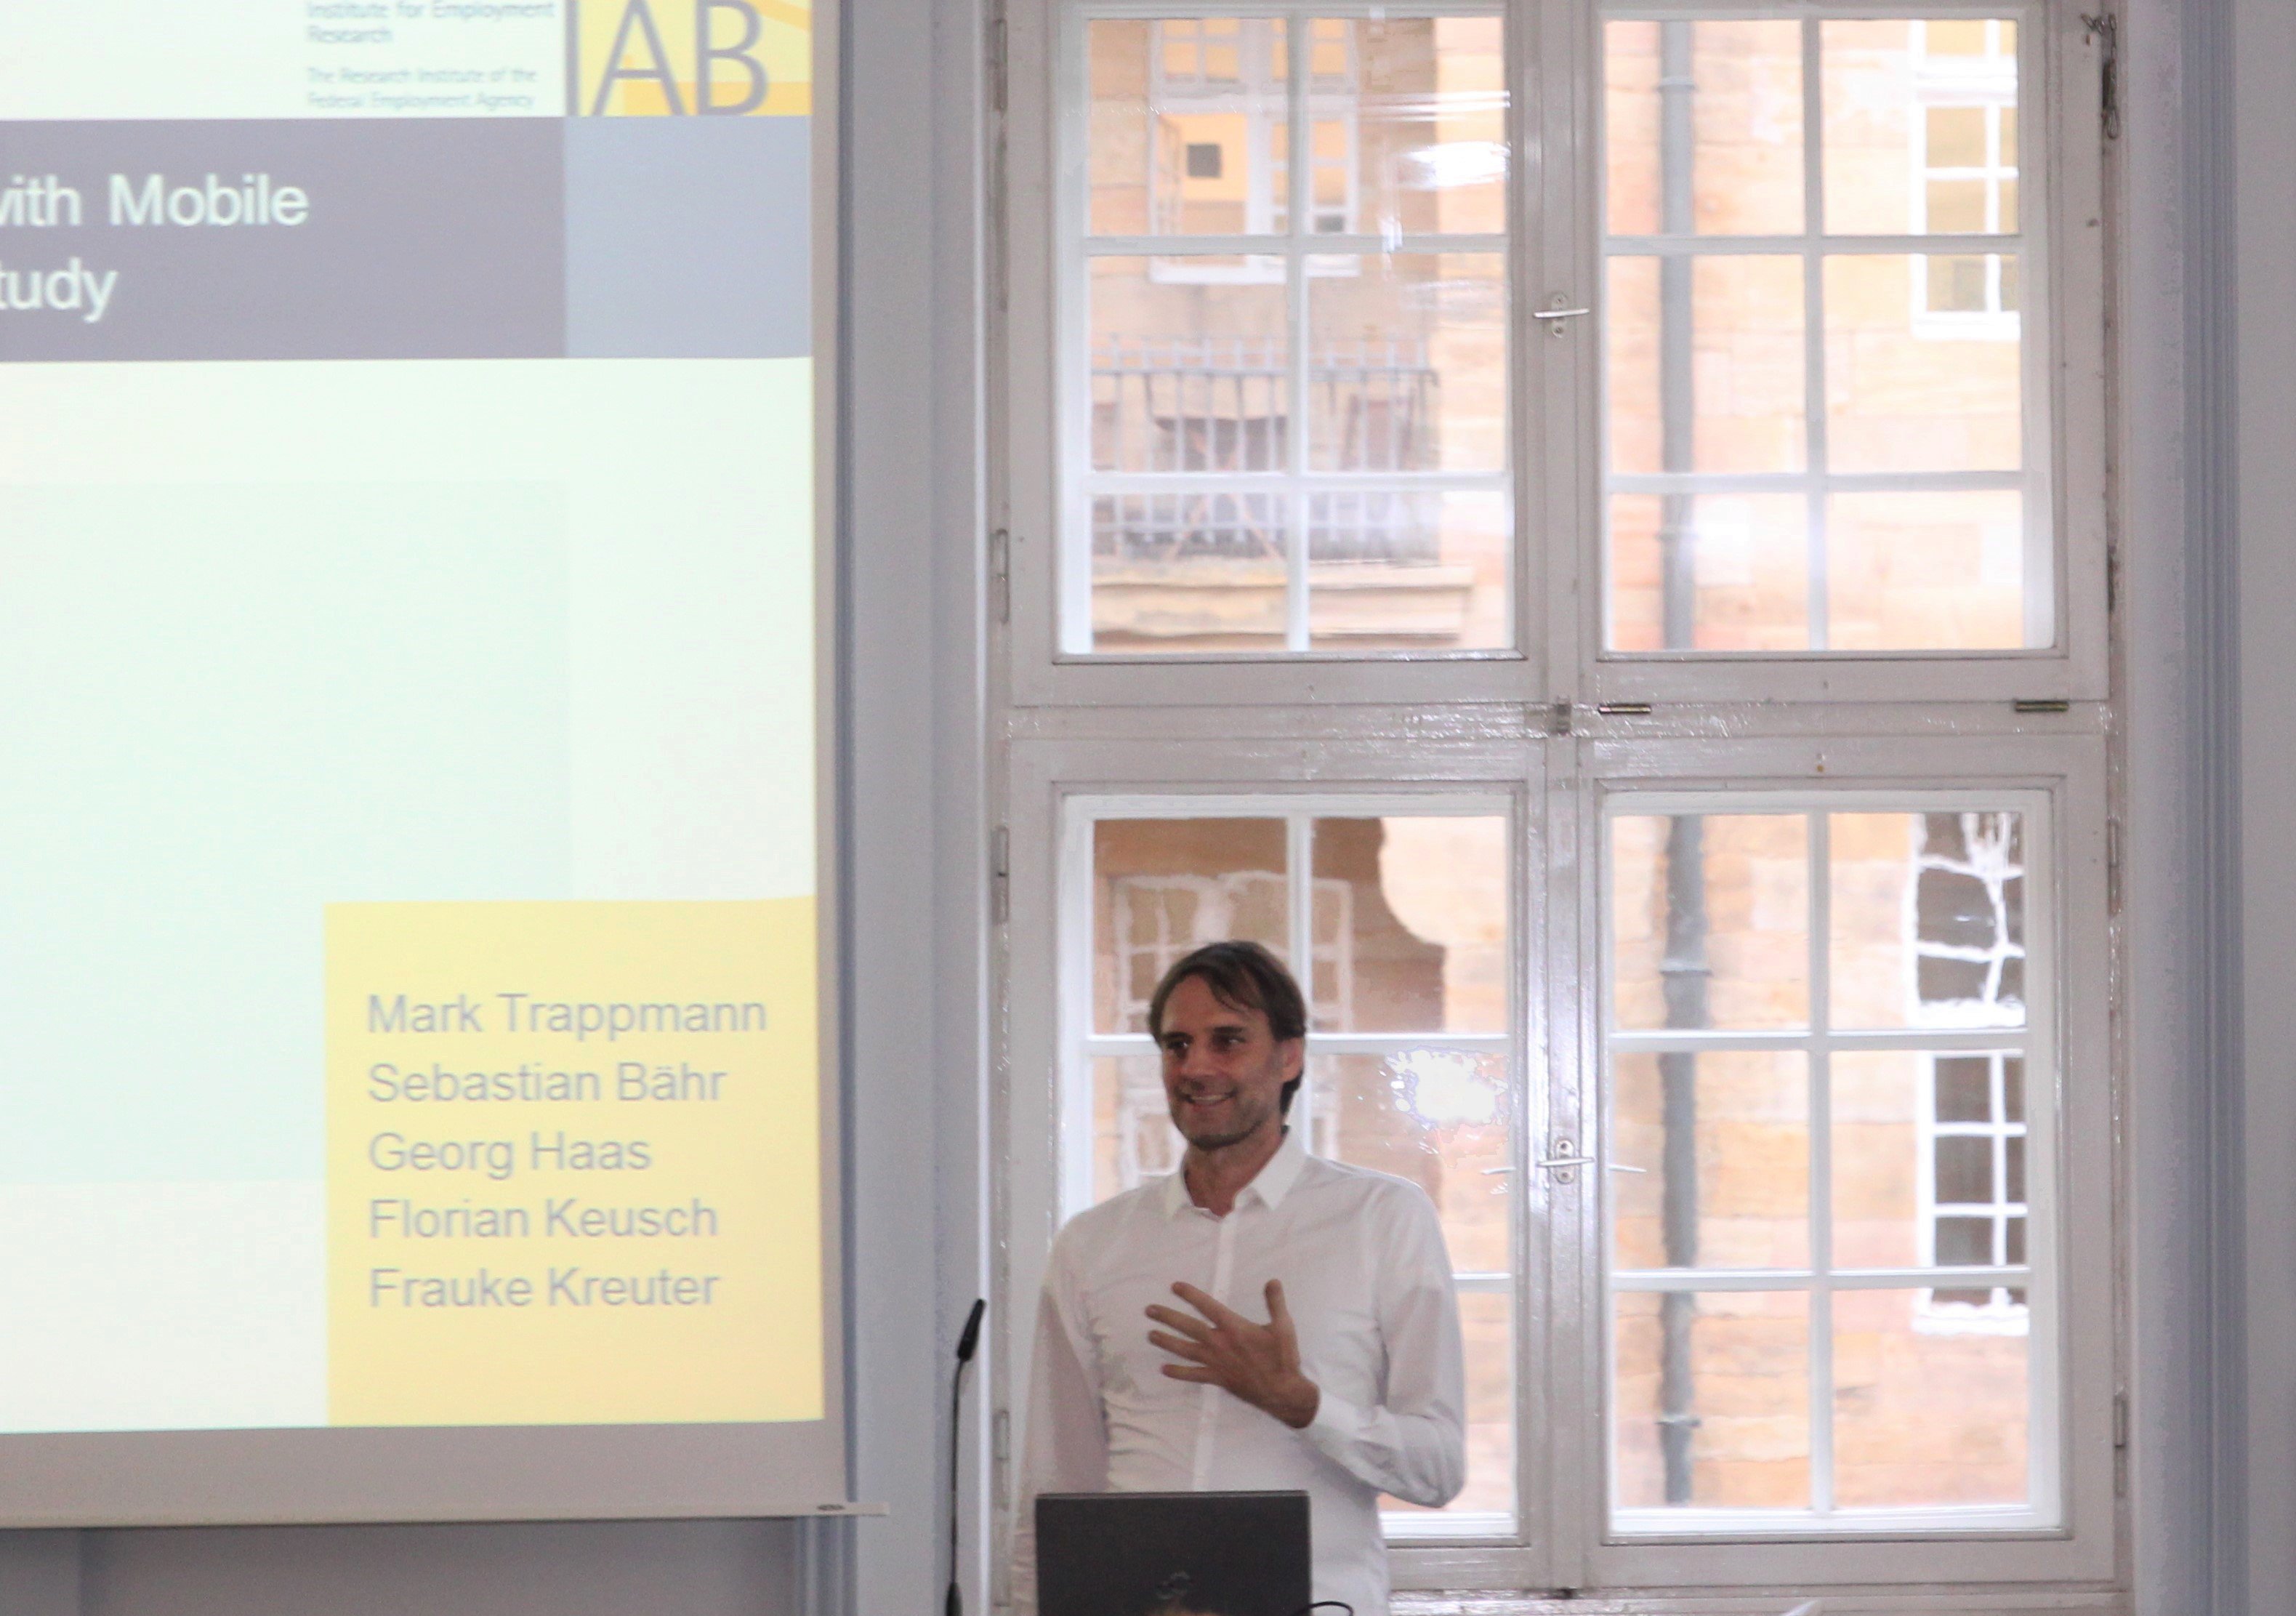 Prof. Mark Trappmann presented the feasibility study on implementing an Android application as part of the panel study PASS.